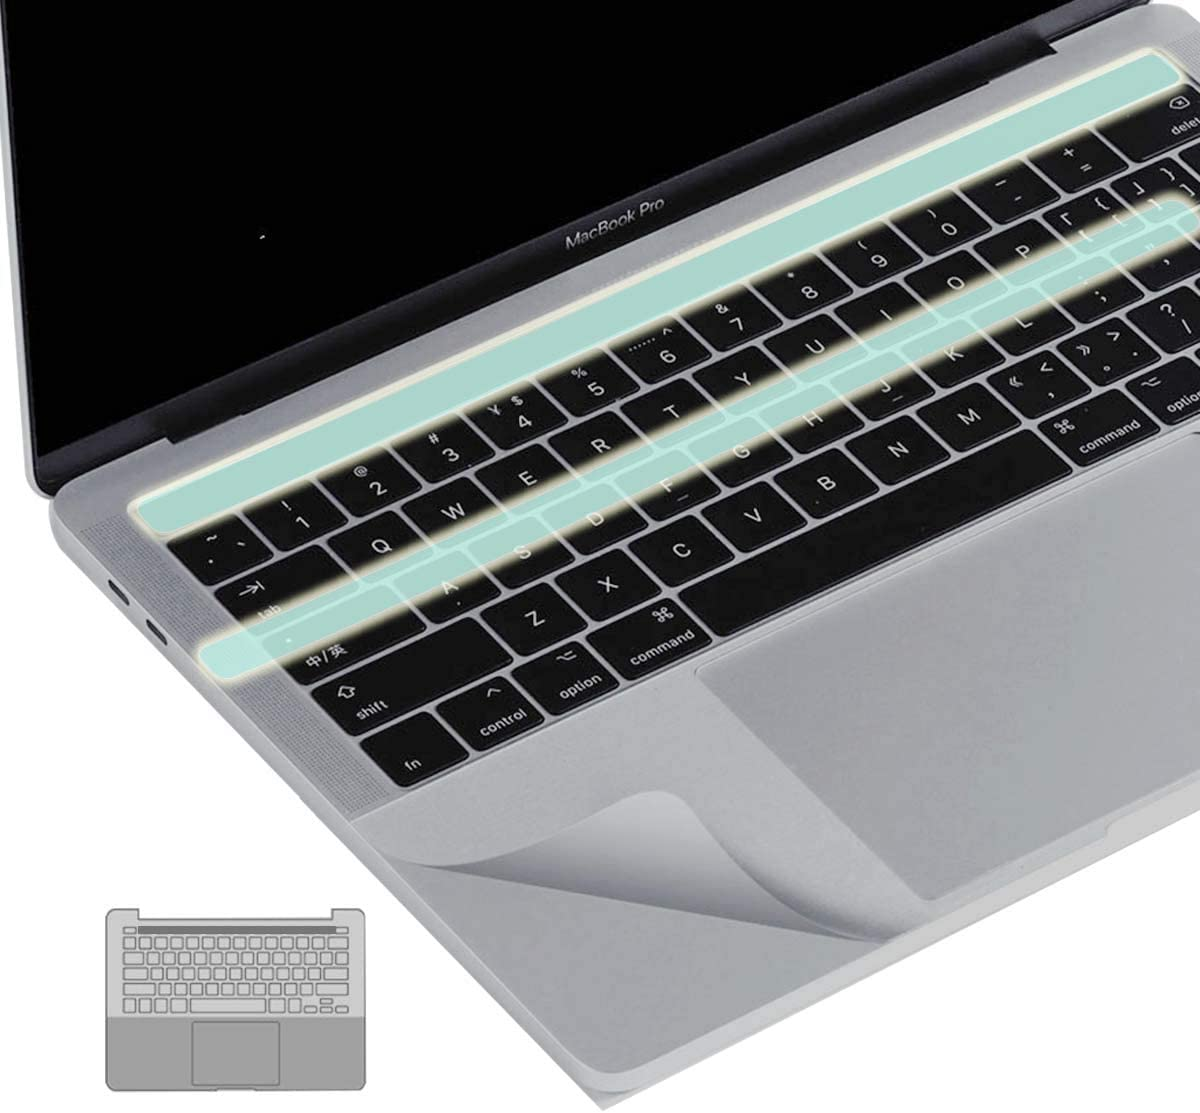 KEANBOLL 3-in-1 Palm Rest Protector Trackpad Cover Touch Bar Skin for MacBook Pro 15 Inch 2020-2016 Model A1707 A1990 with Touch bar-Silver